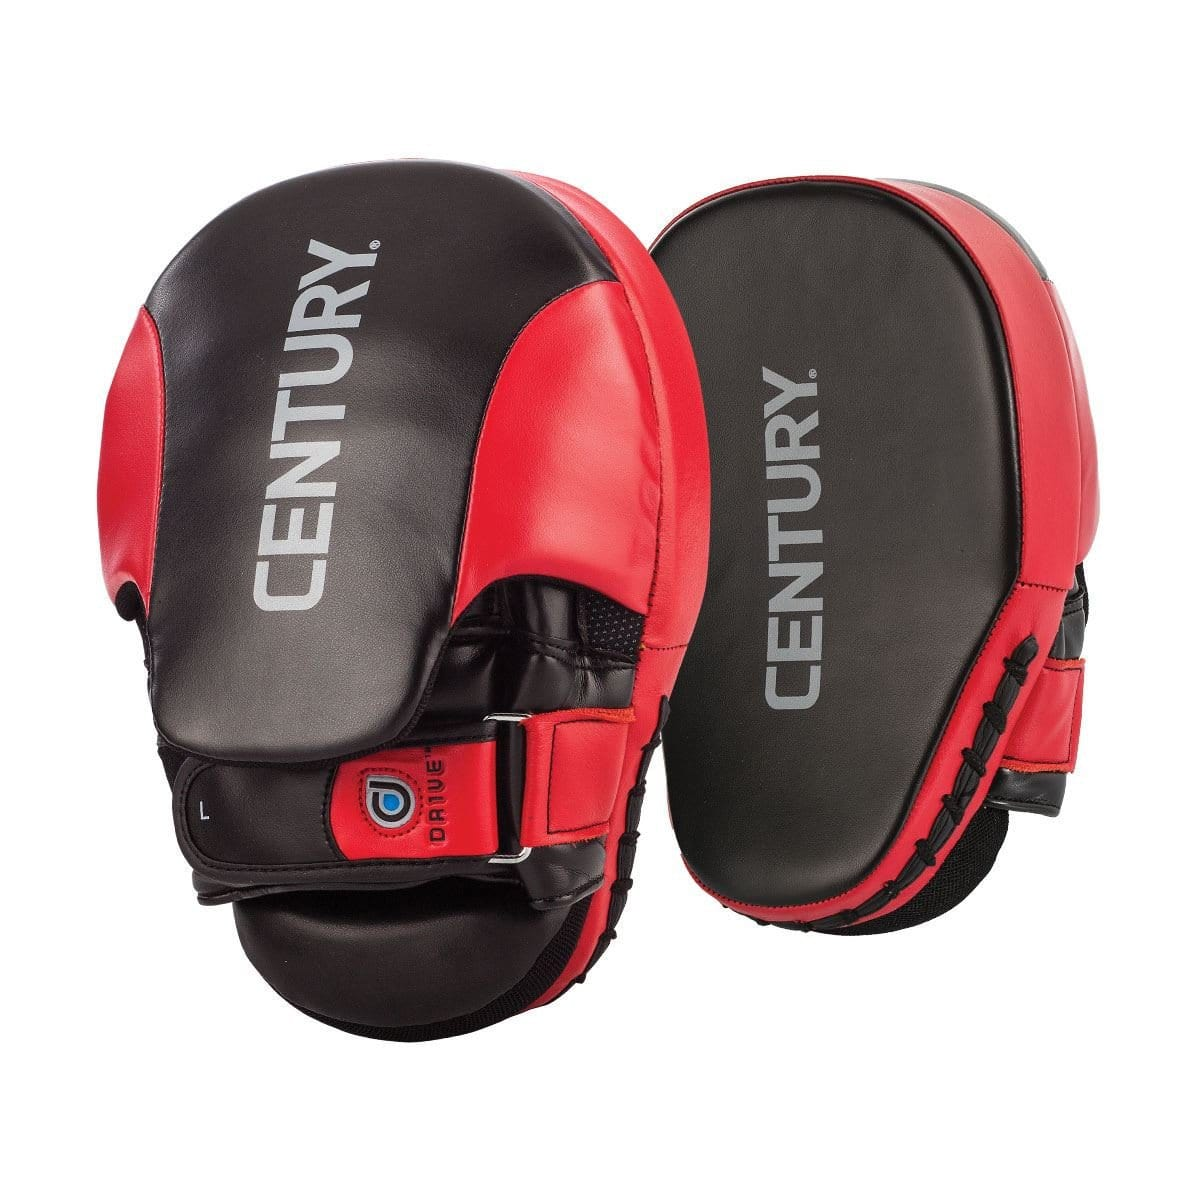 Century DRIVE Curved Punch Mitts c141012p - BlackBeltShop